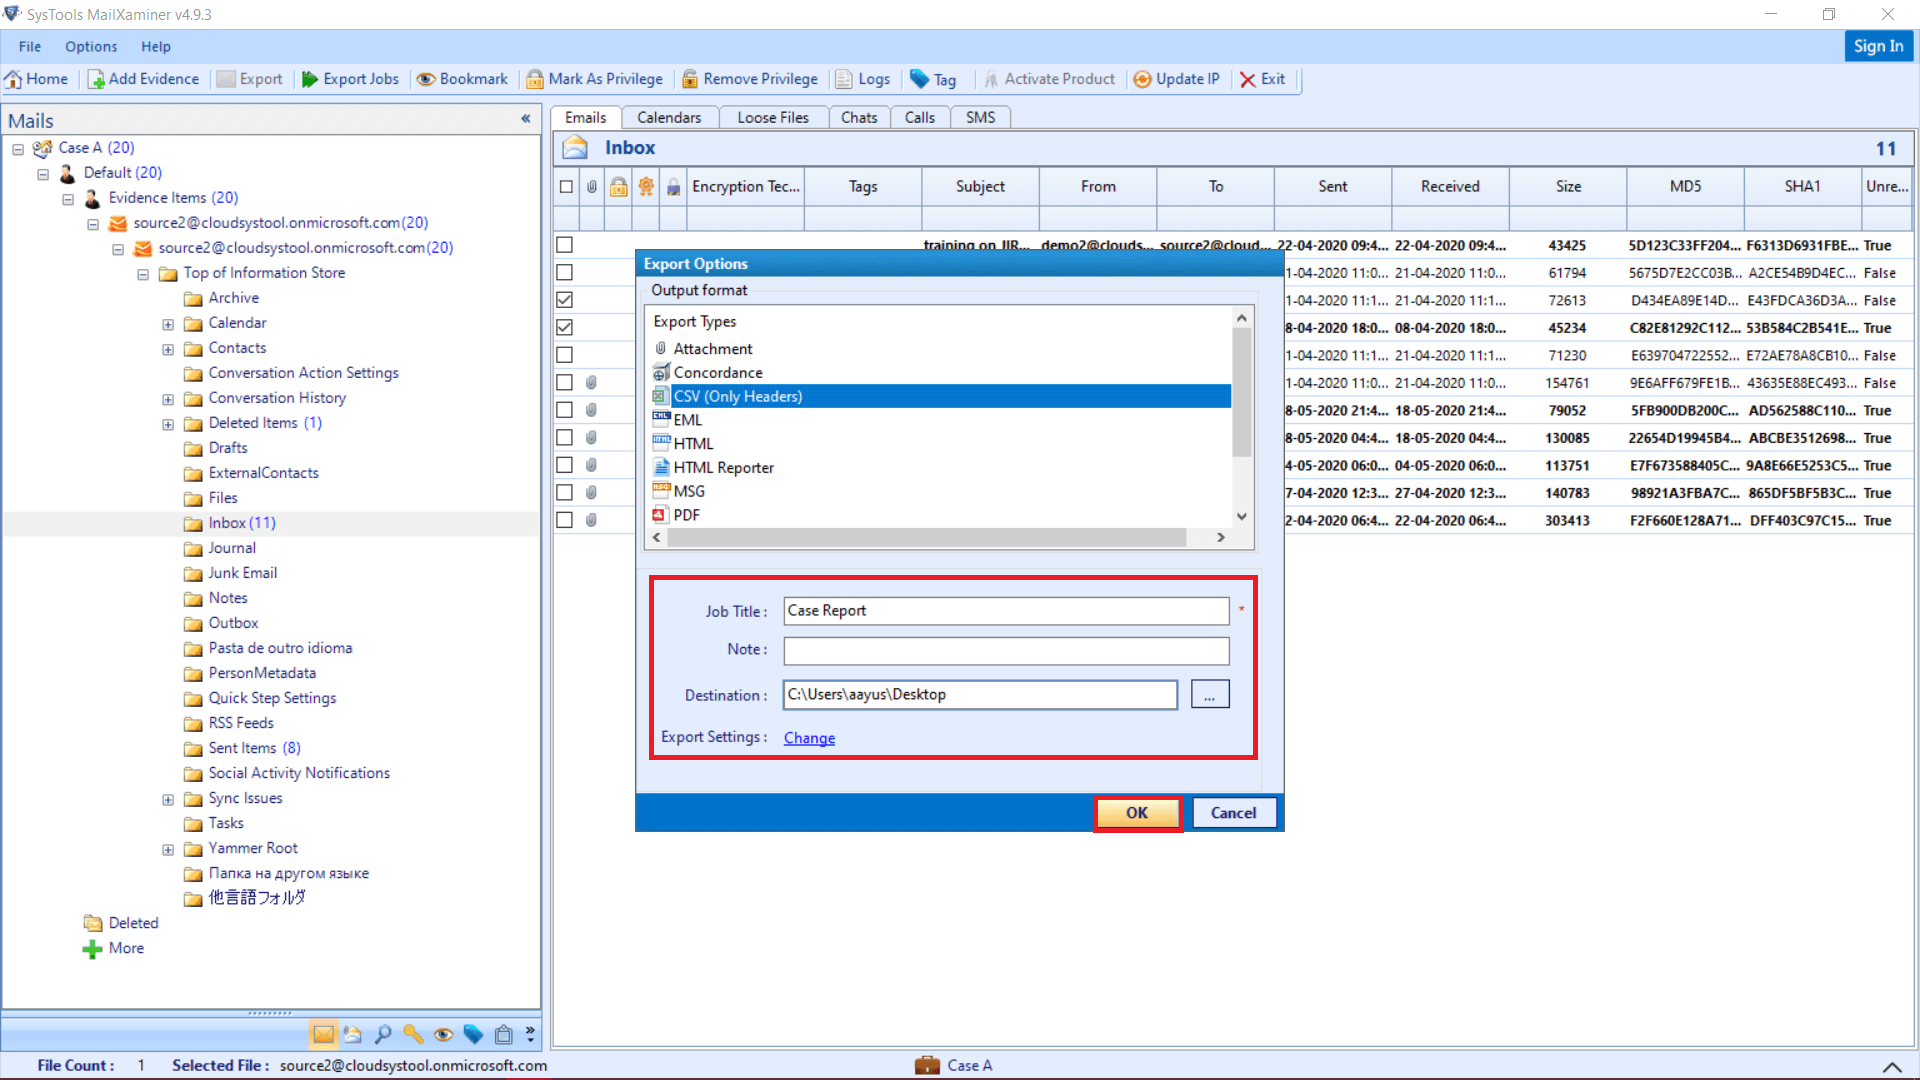 Office 365 Email Forensics: Export Options